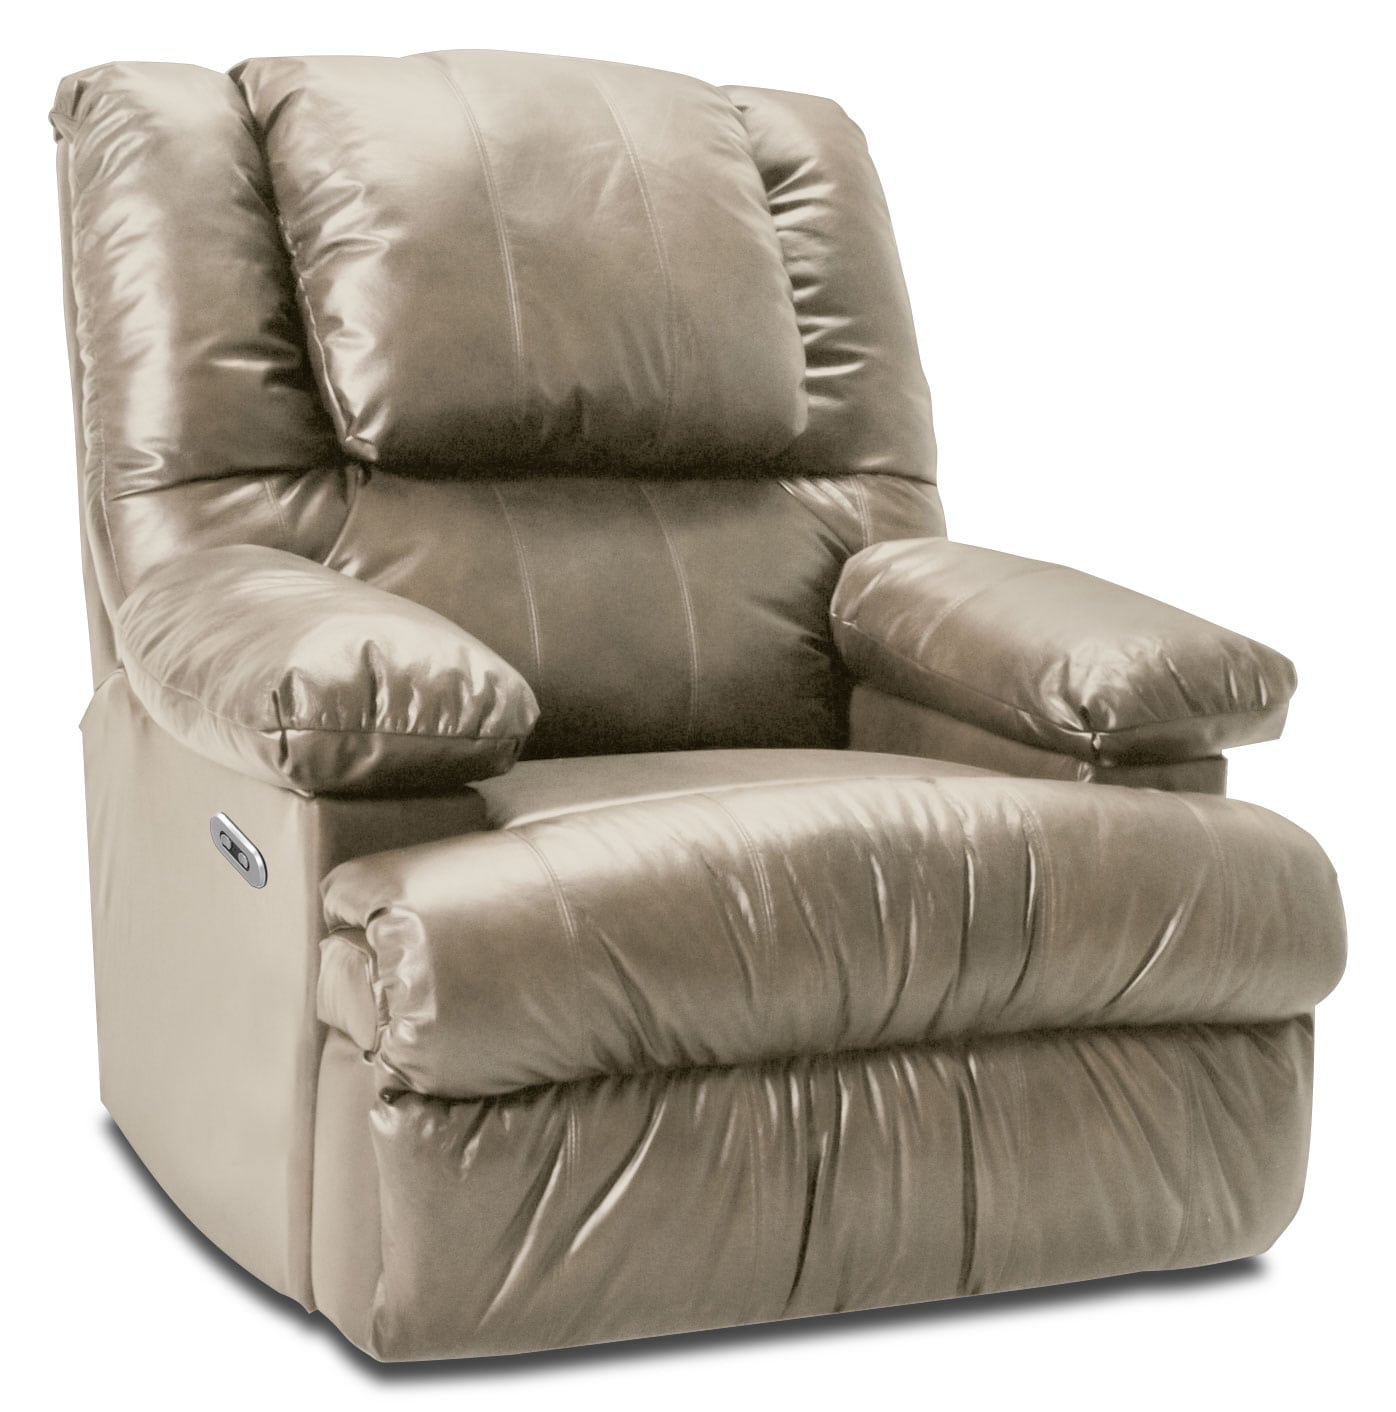 Designed2B 5598 Bonded Leather Power Recliner with Massage and Storage - Putty